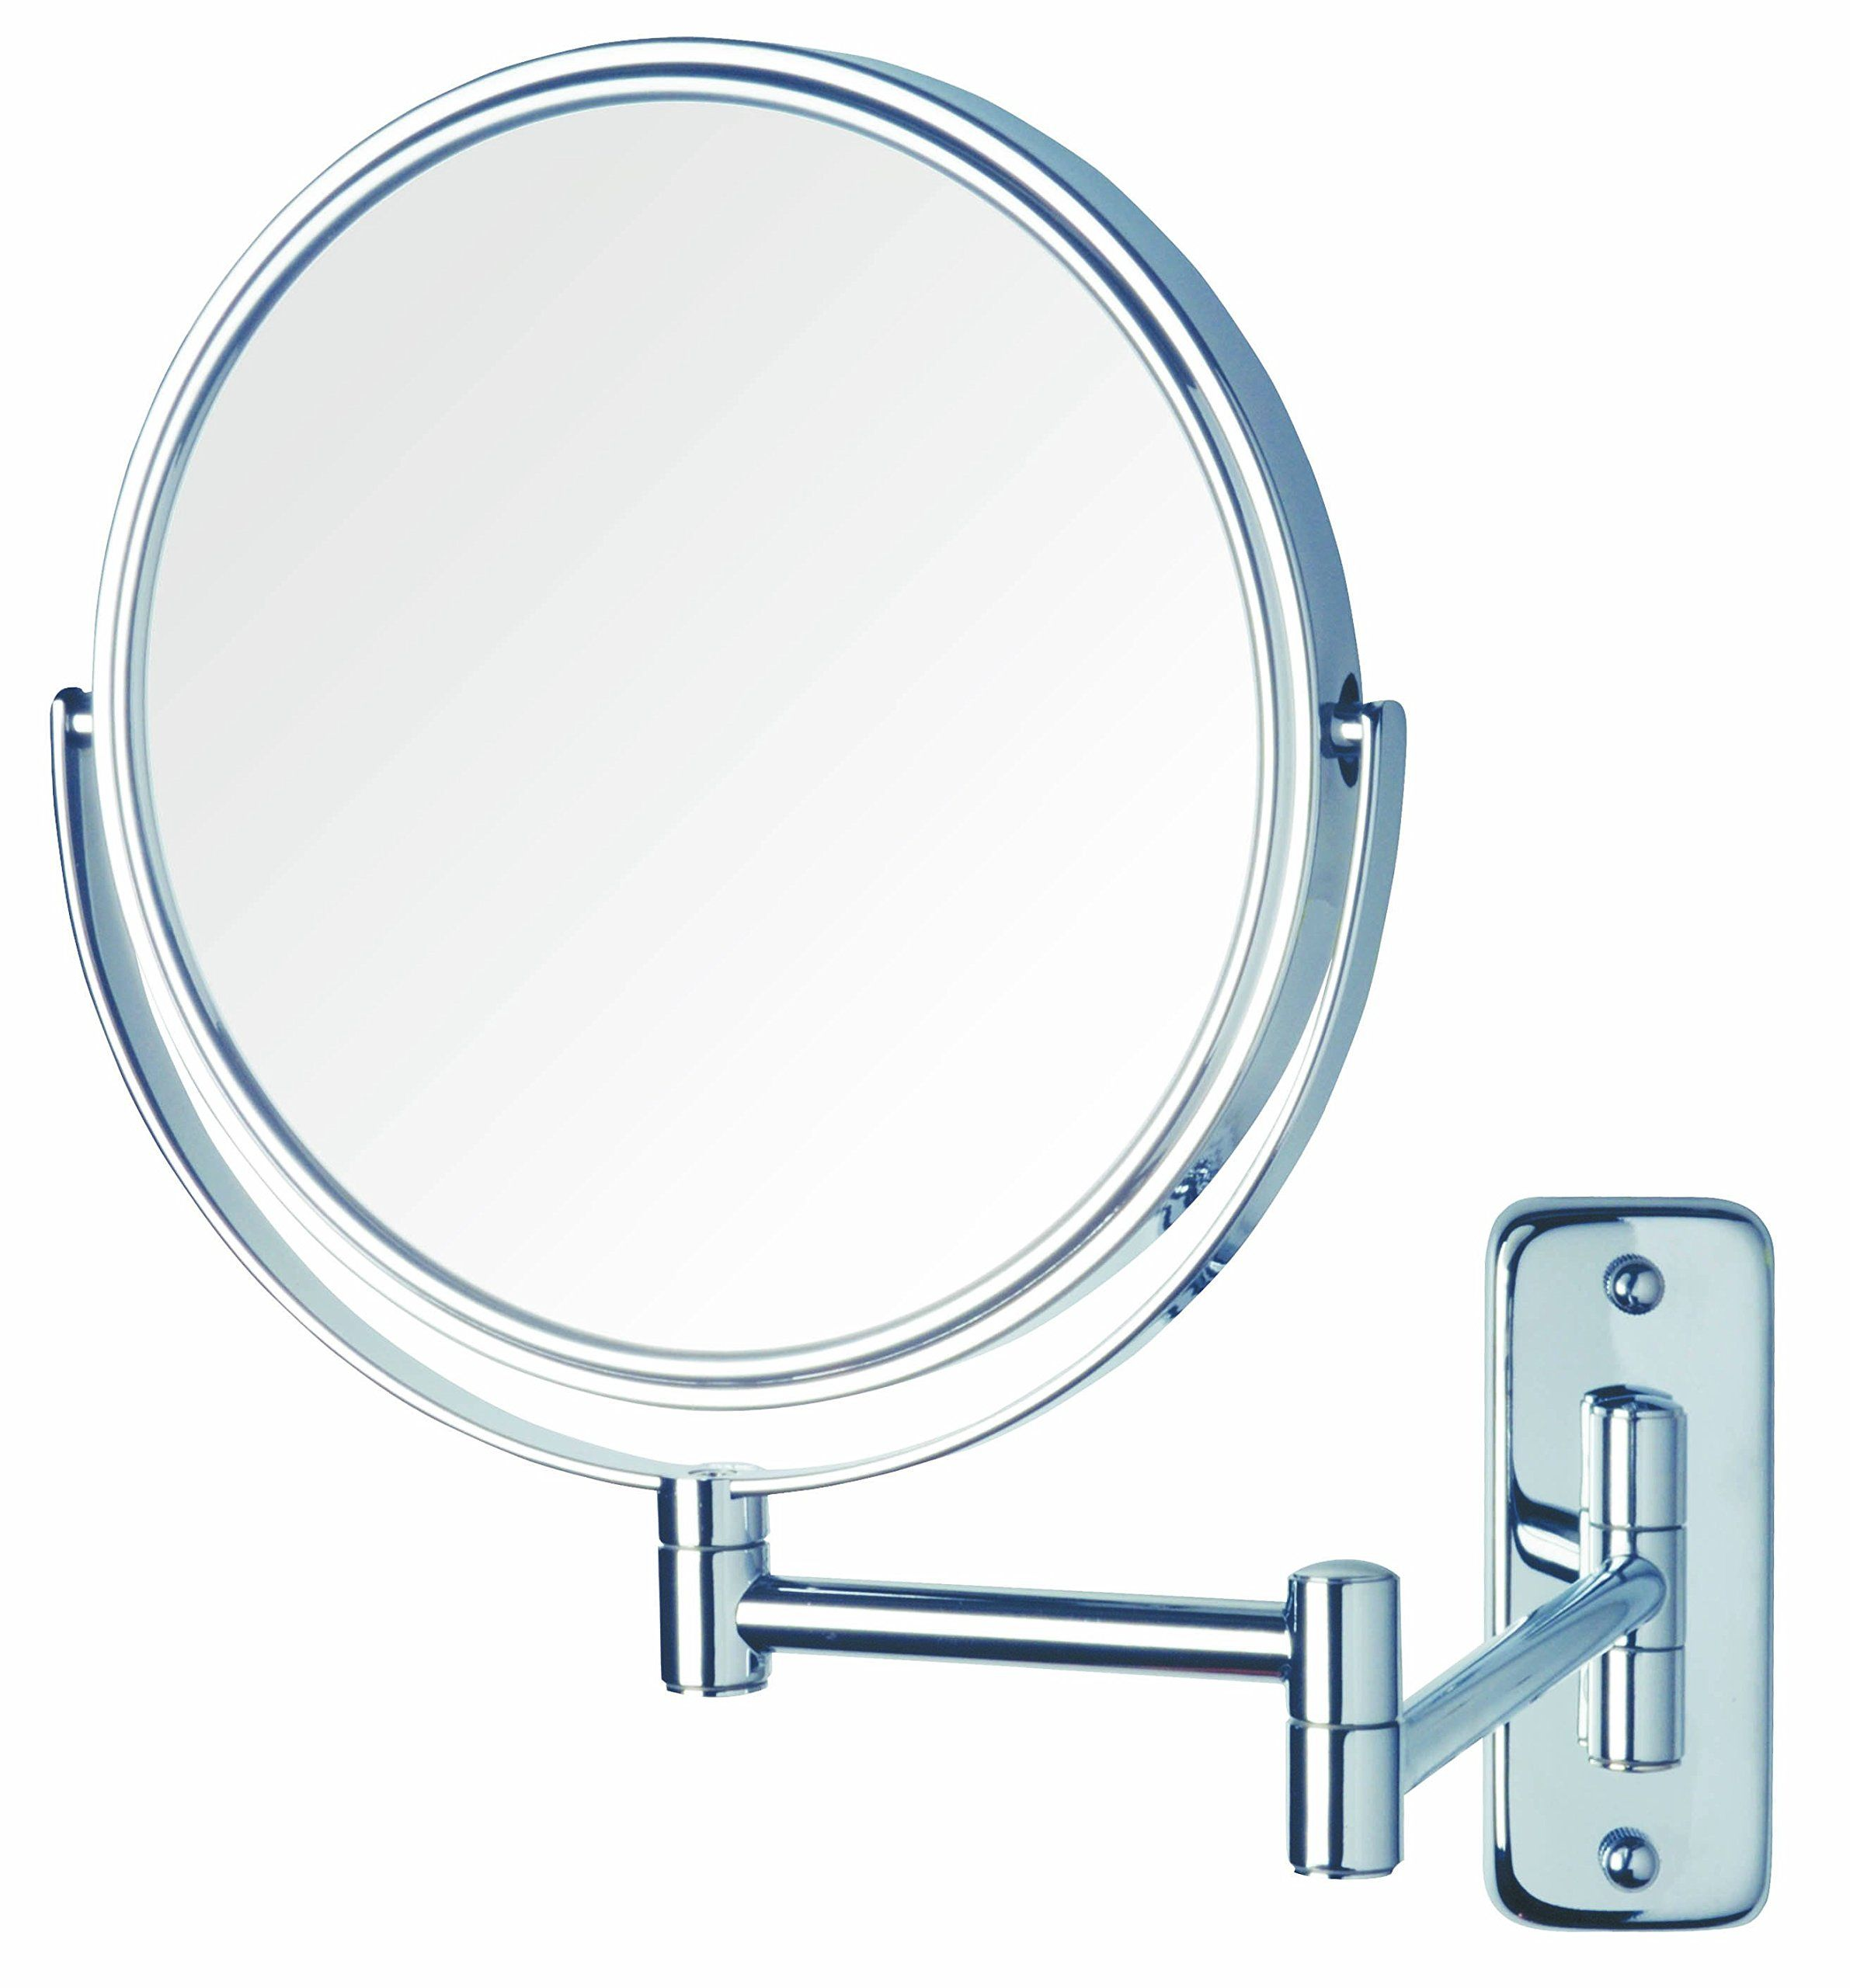 Jerdon Jp7506cf 8inch Wall Mount Makeup Mirror With 5x Magnification Chrome Finish A Lot More Info Wall Mounted Makeup Mirror Makeup Mirror Makeup Mirrors